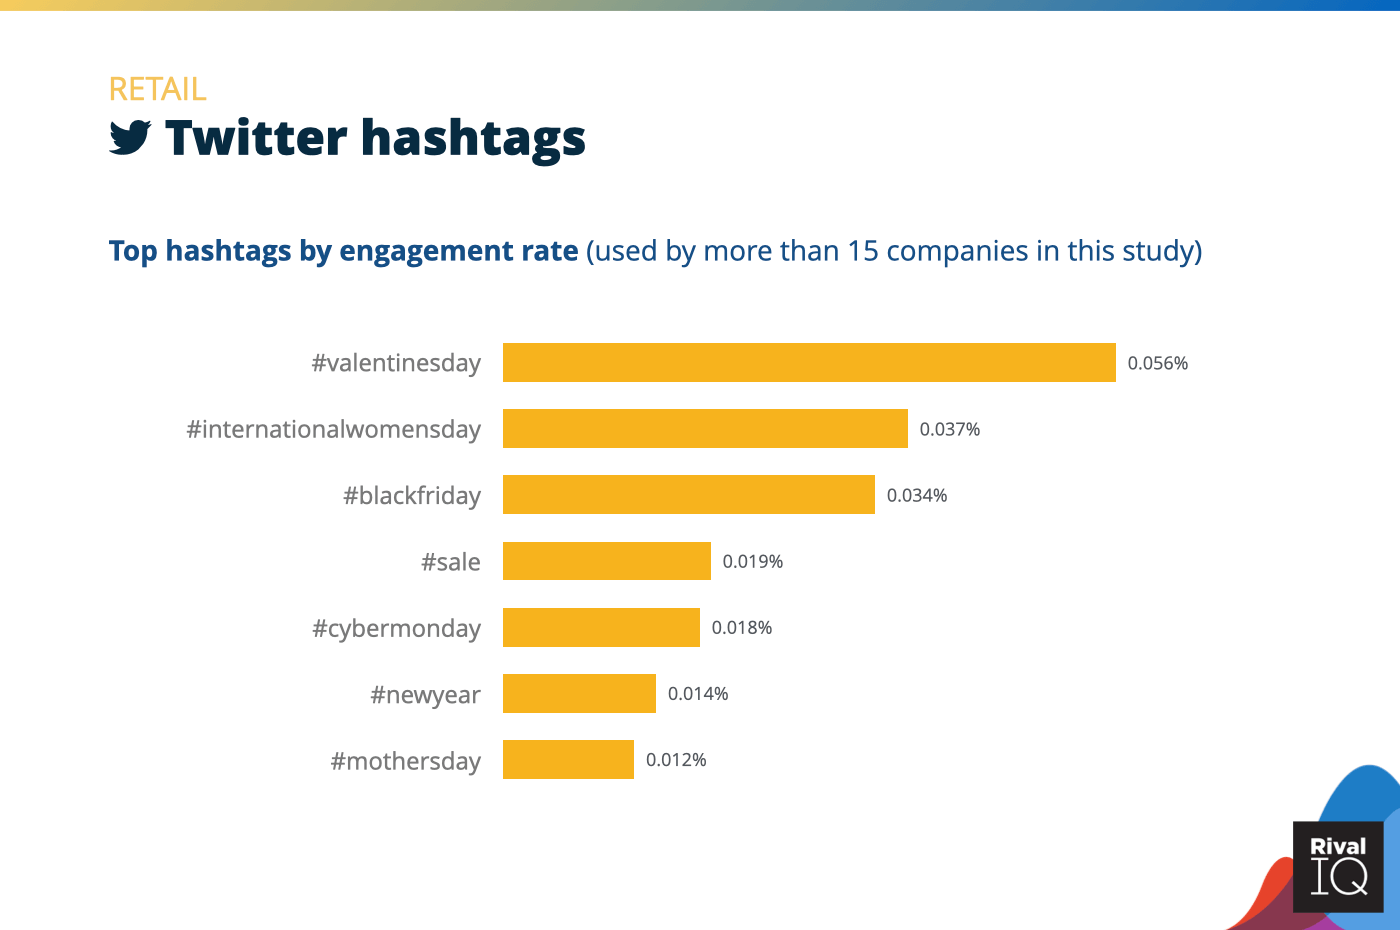 Chart of Top Twitter hashtags by engagement rate, Retail